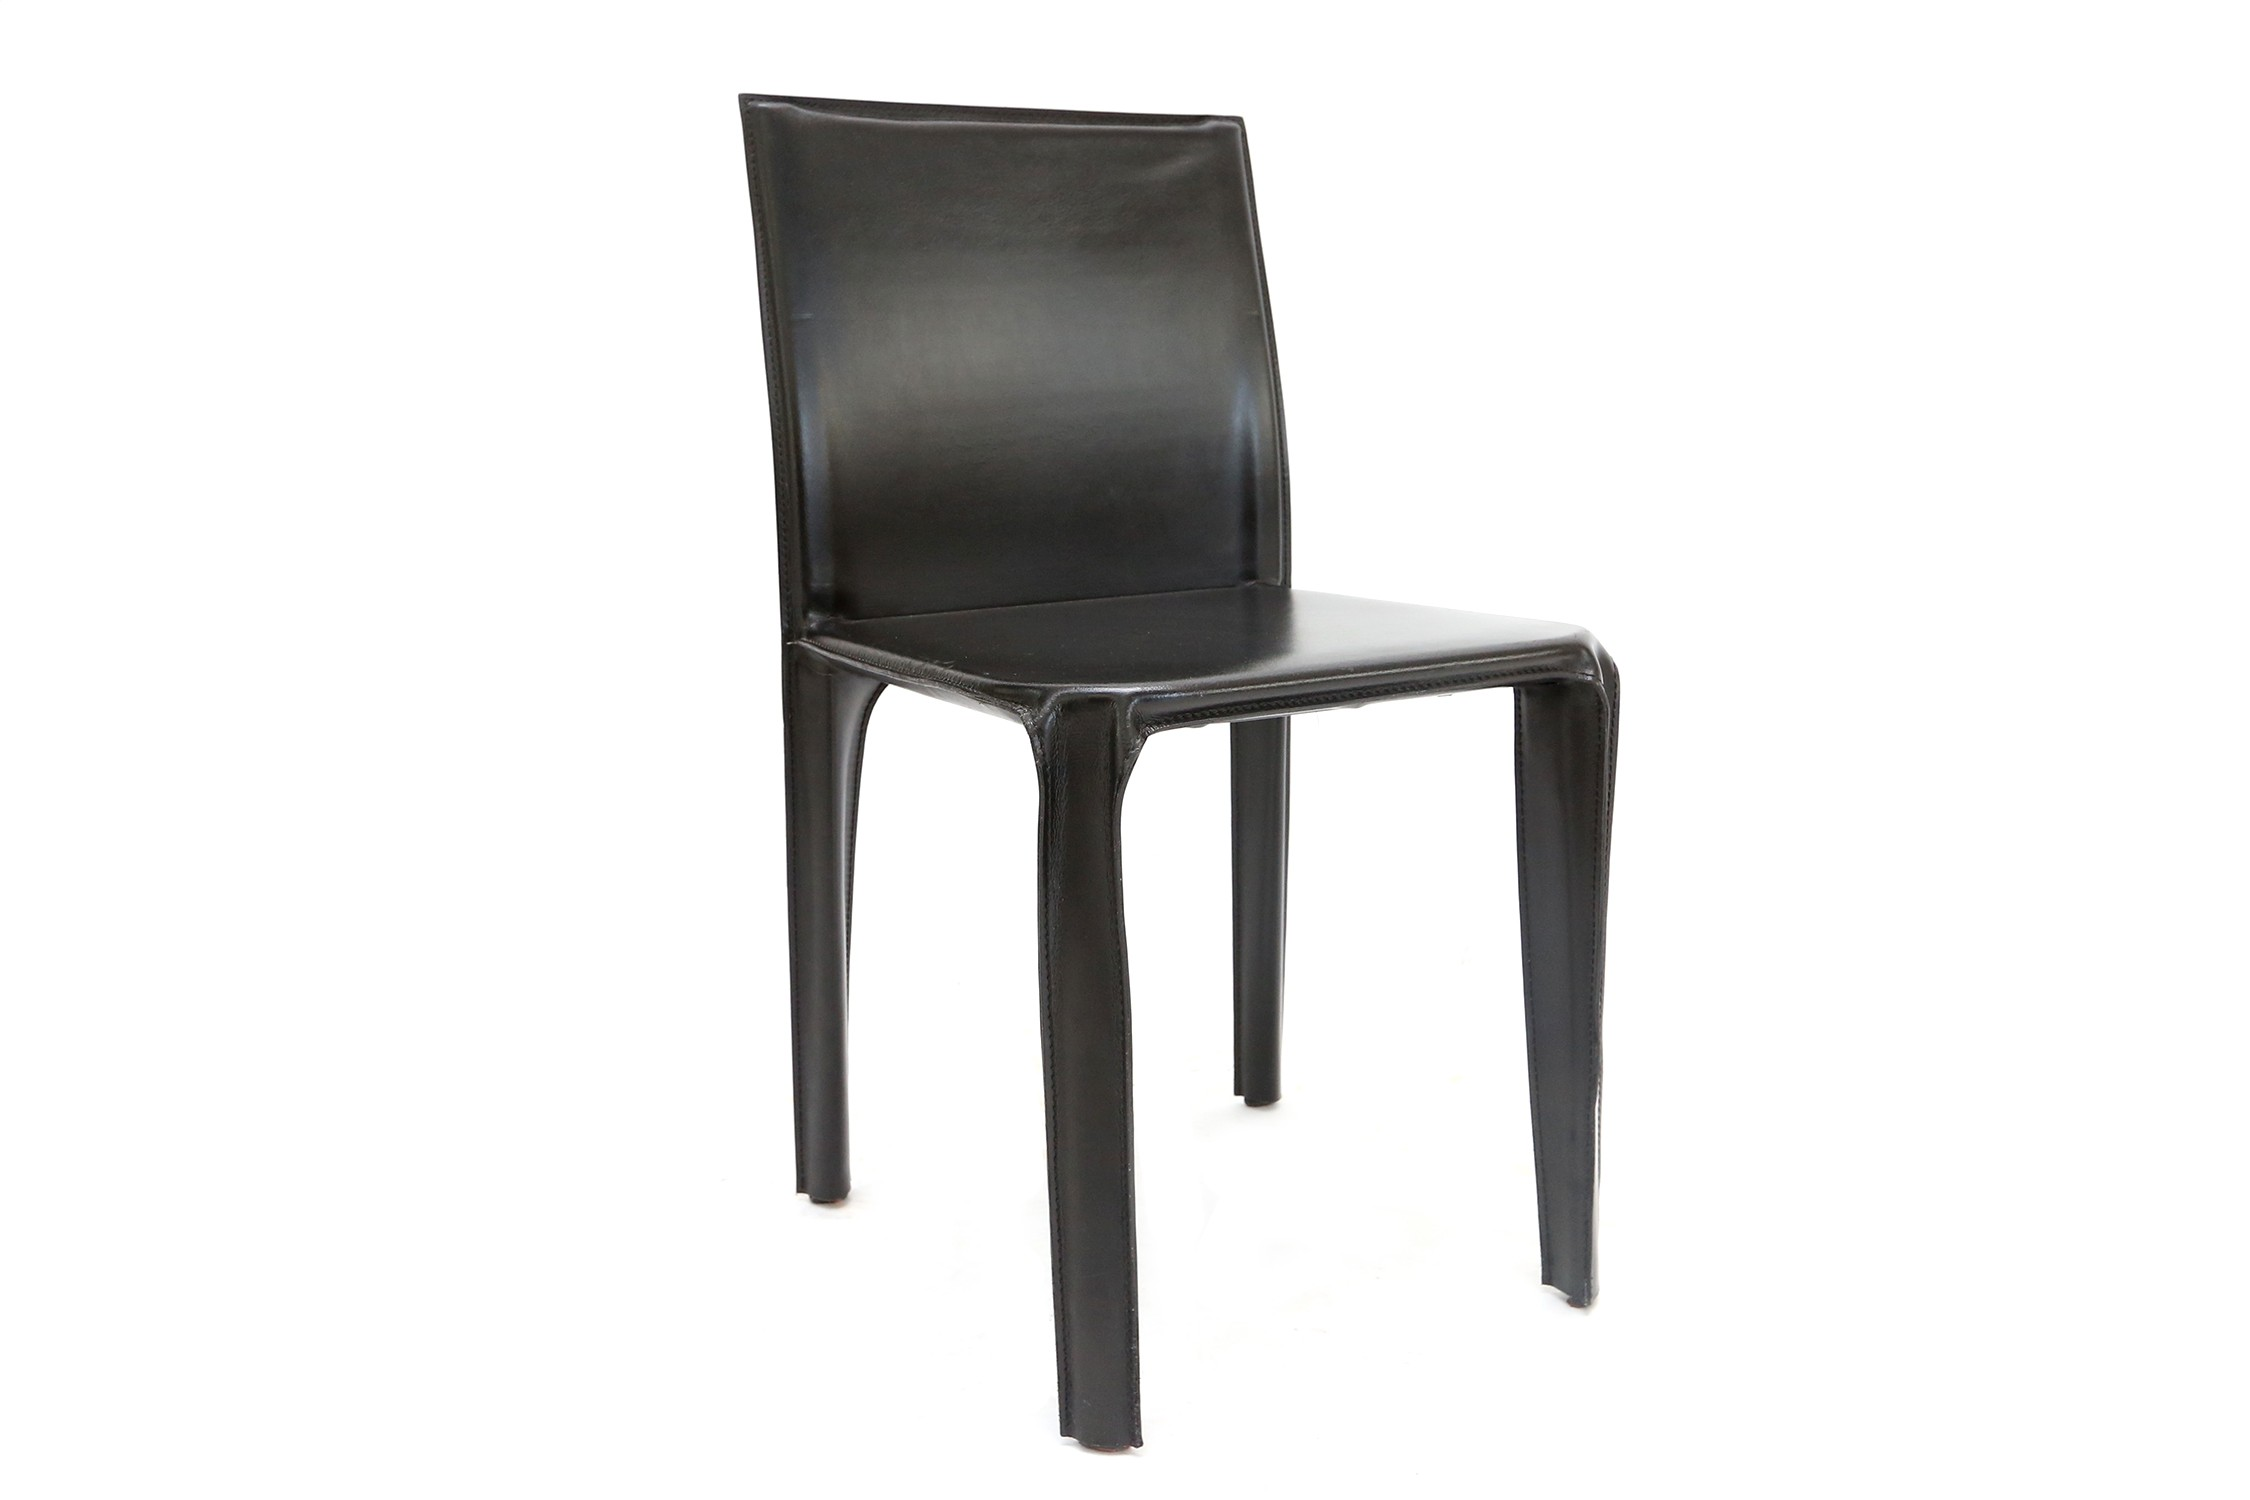 Set of 6 Arper dining chairs in black leather 1970s Design Market